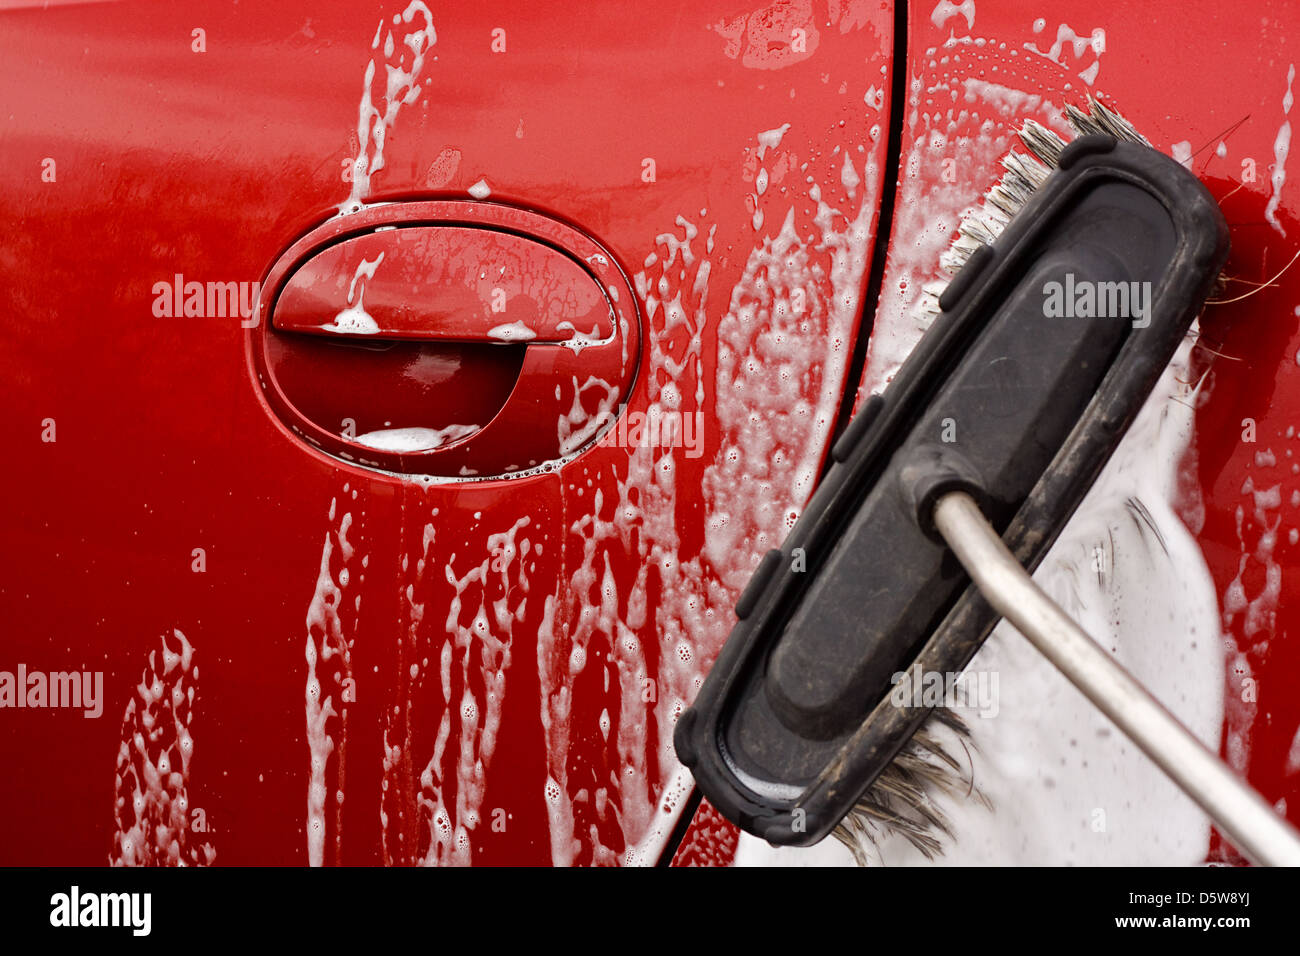 Washing the car with a soapy brush at a coin operated car jet wash - Stock Image